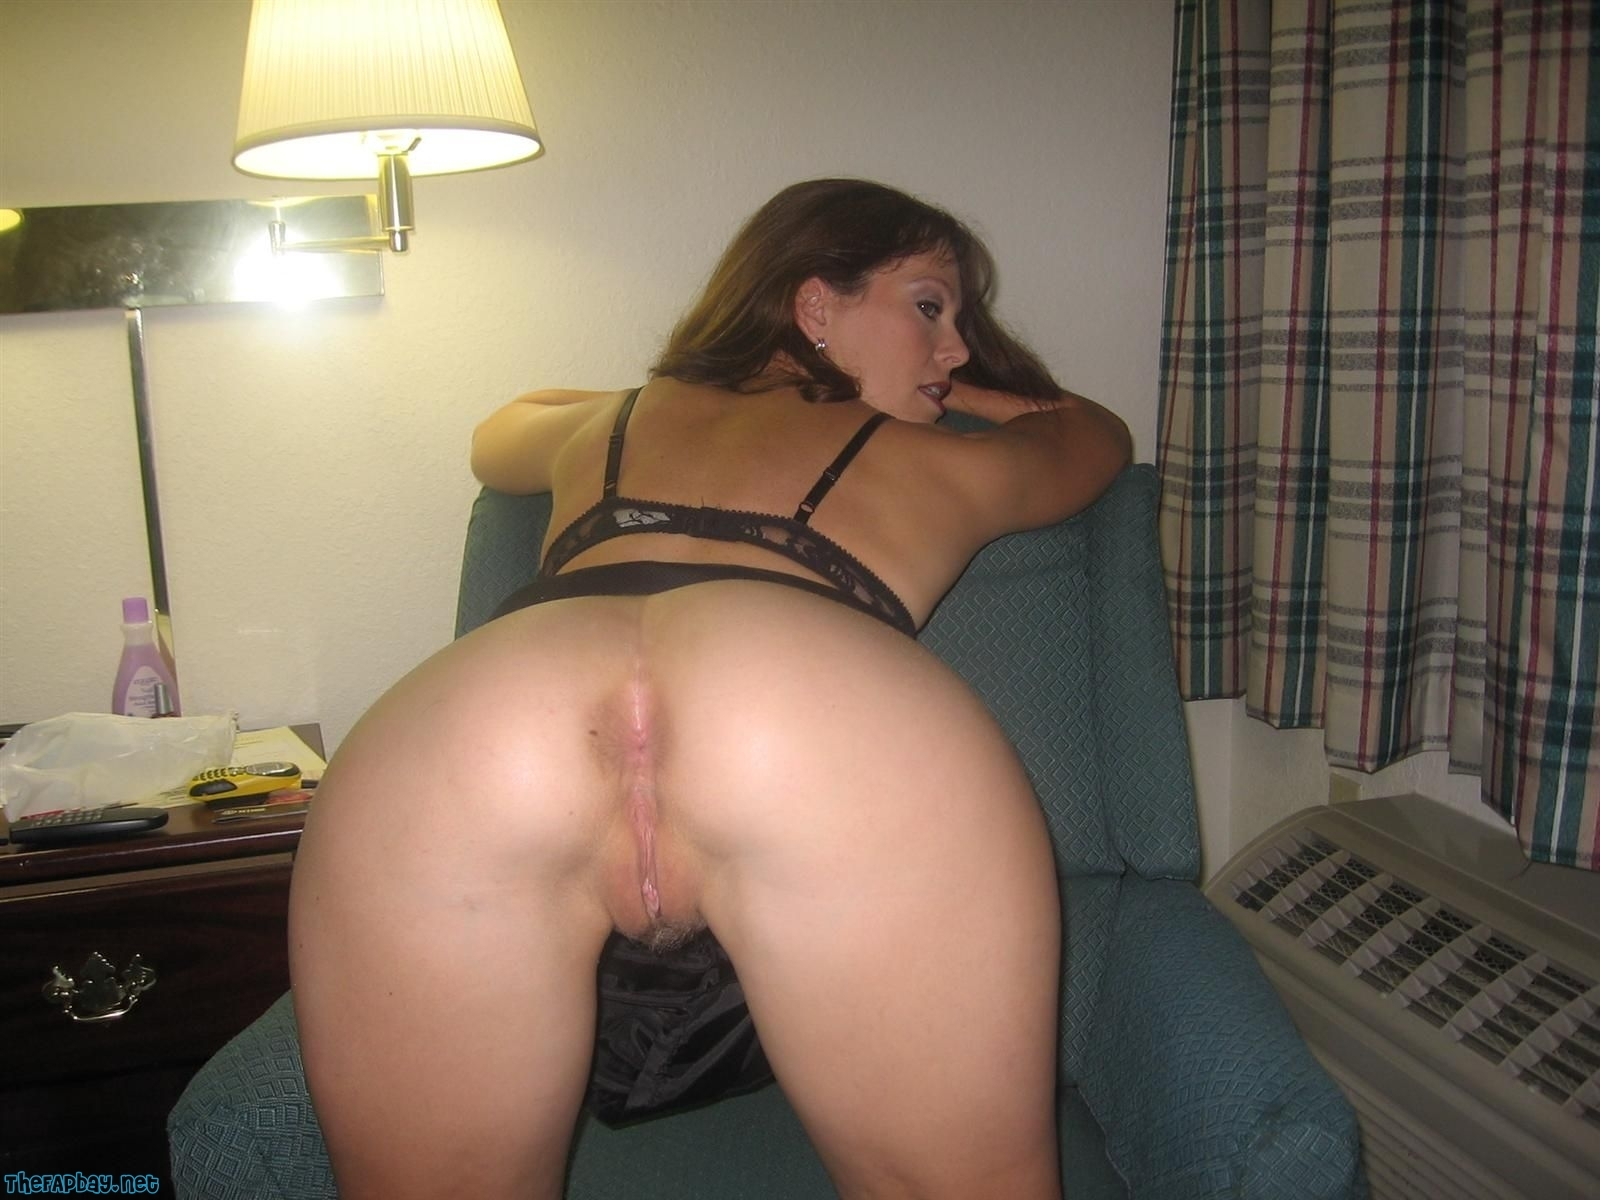 gros seins french taboo maman belle femme ronde